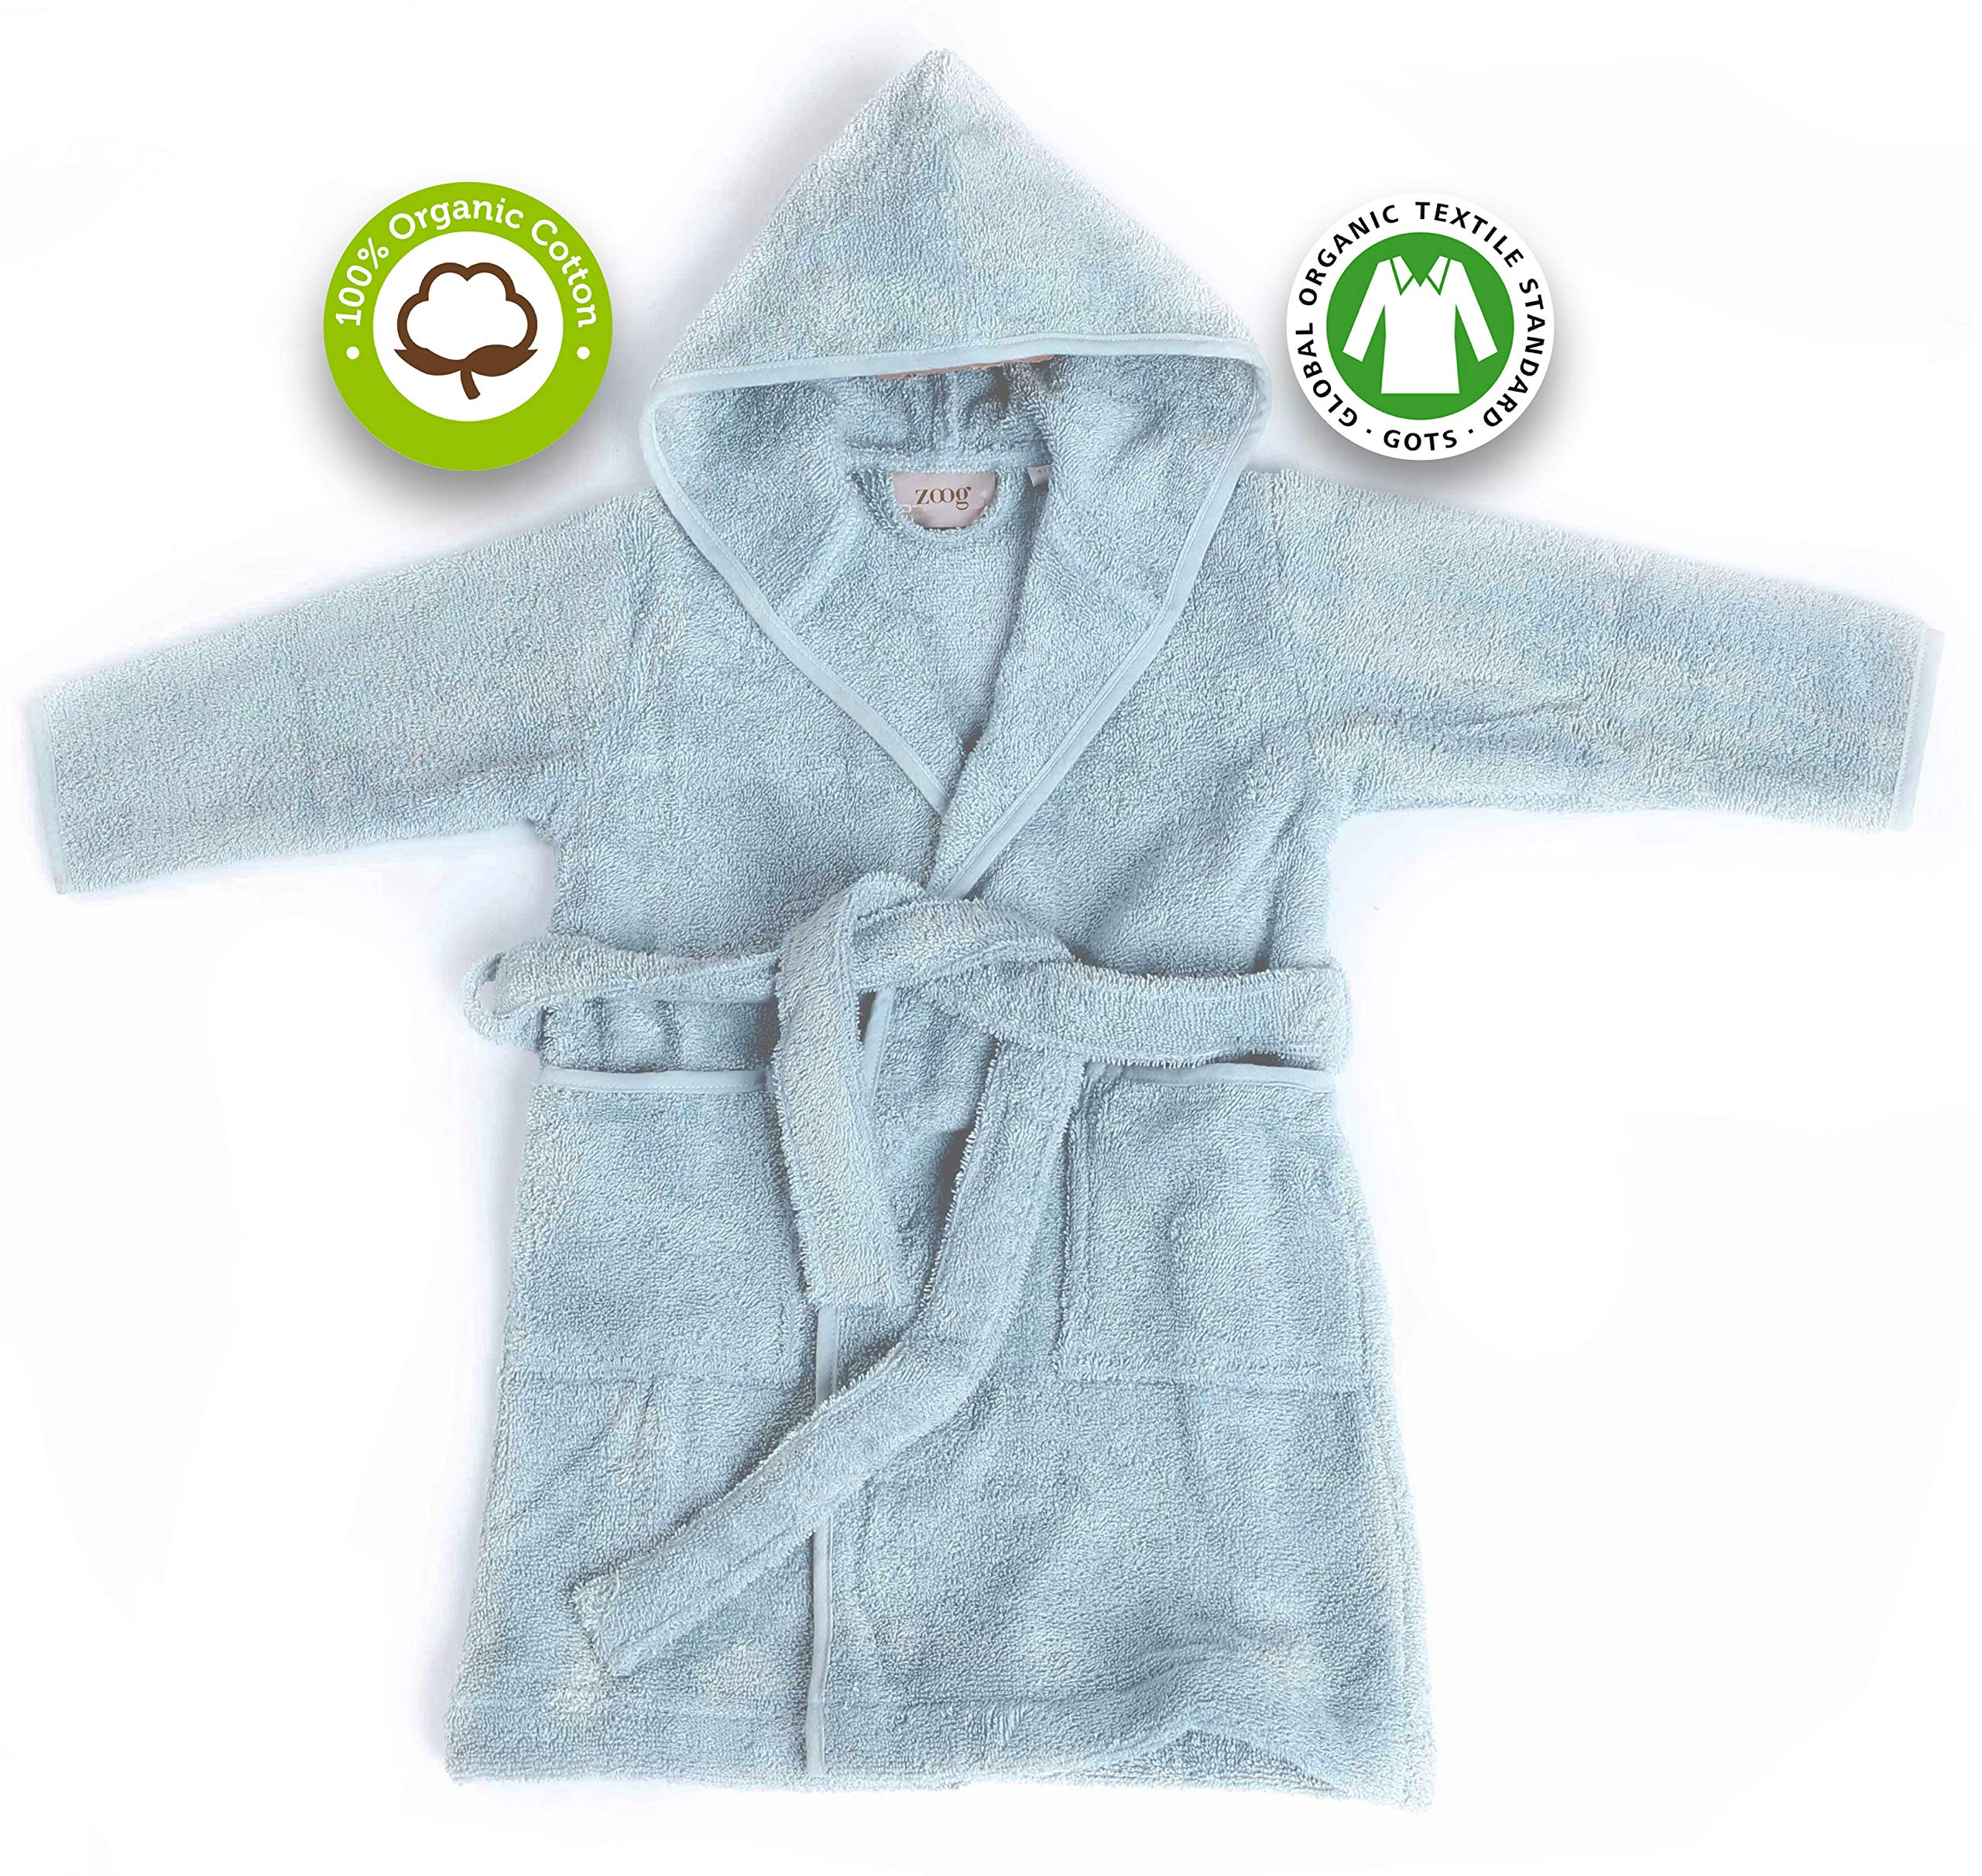 Zoog Organic Cotton Hooded Baby Bath Robe Natural Dye Premium Quality GOTS Certified Non-Chemical Non-Toxic 100% Vegan Soft Comfortable Blue (2-3 Years, Blue) by Zoog